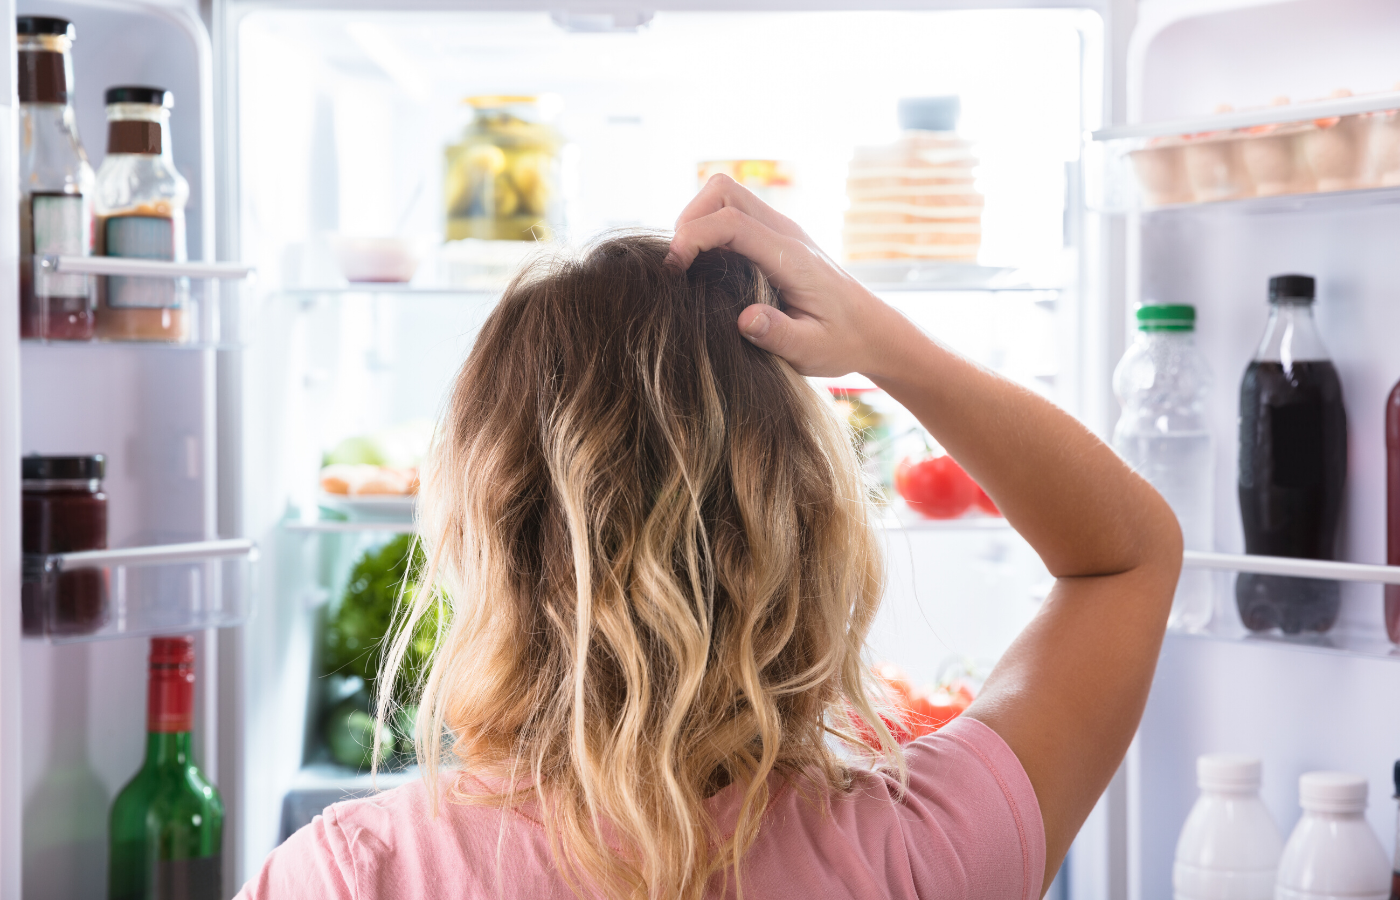 woman confused at the fridge